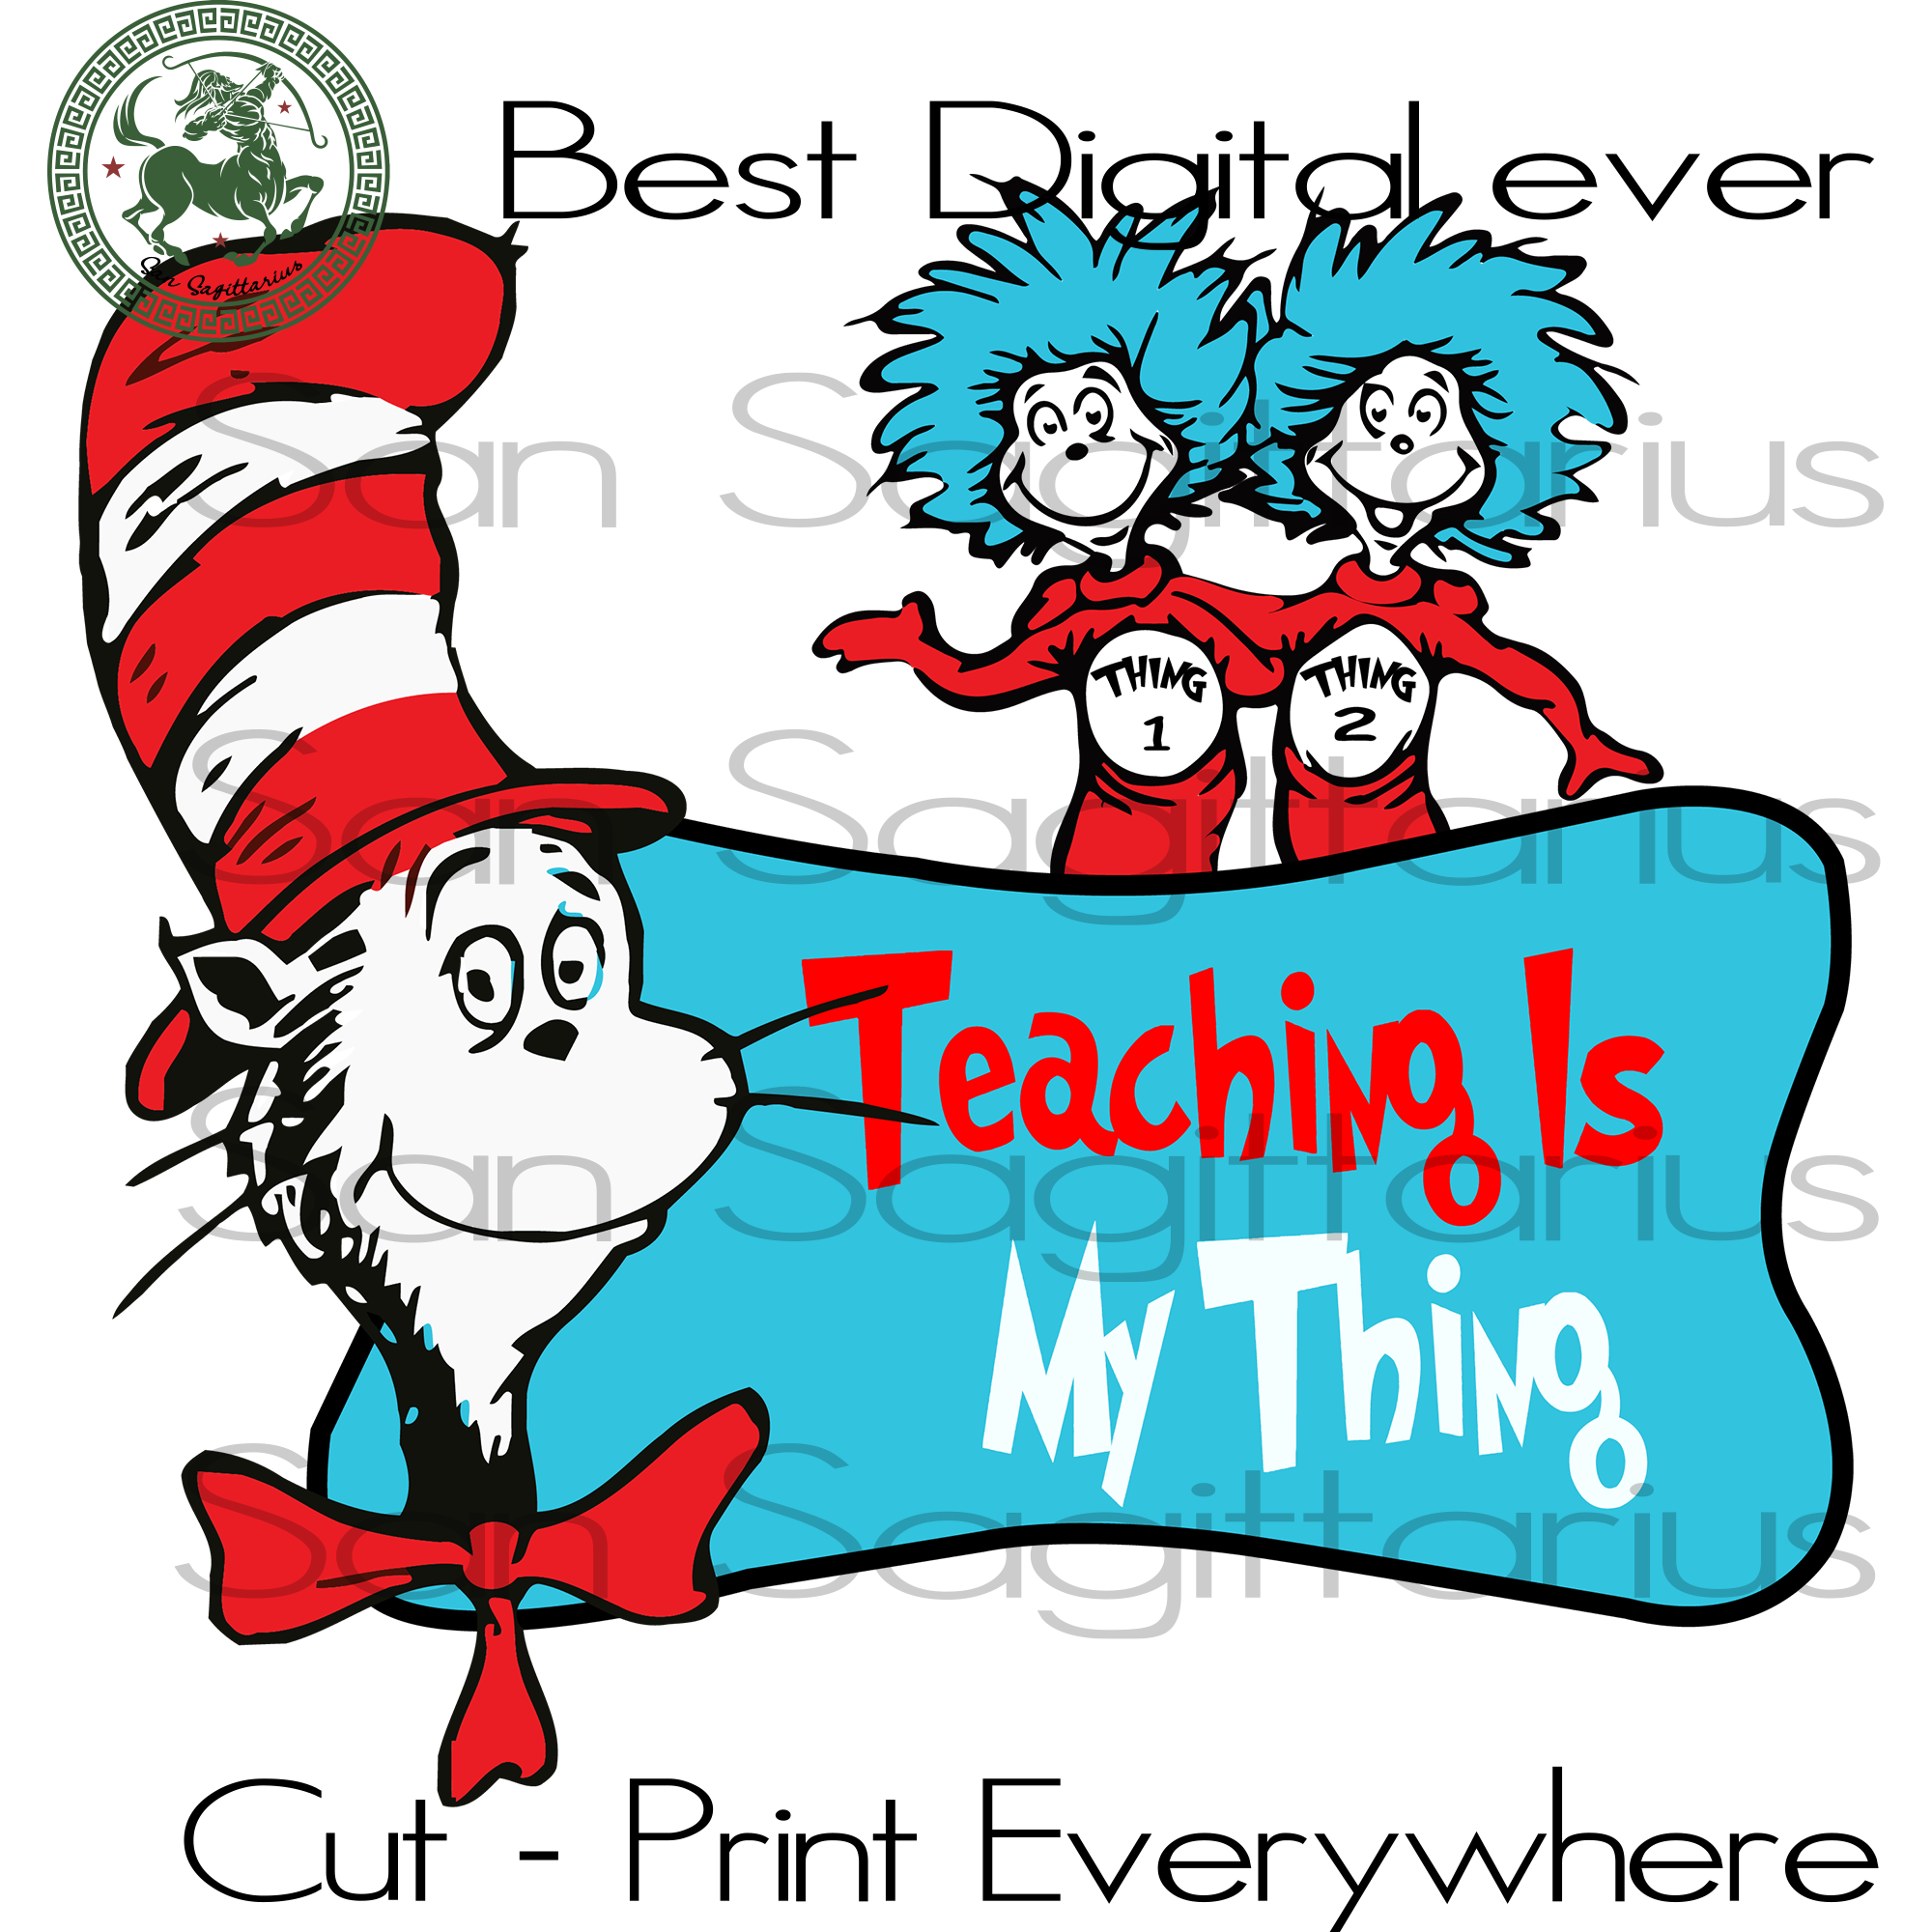 Thing 1 Thing 2 Svg, Dr Seuss Cut Files, Dr Seuss Party SVG Files For Cricut Silhouette Instant Download | San Sagittarius